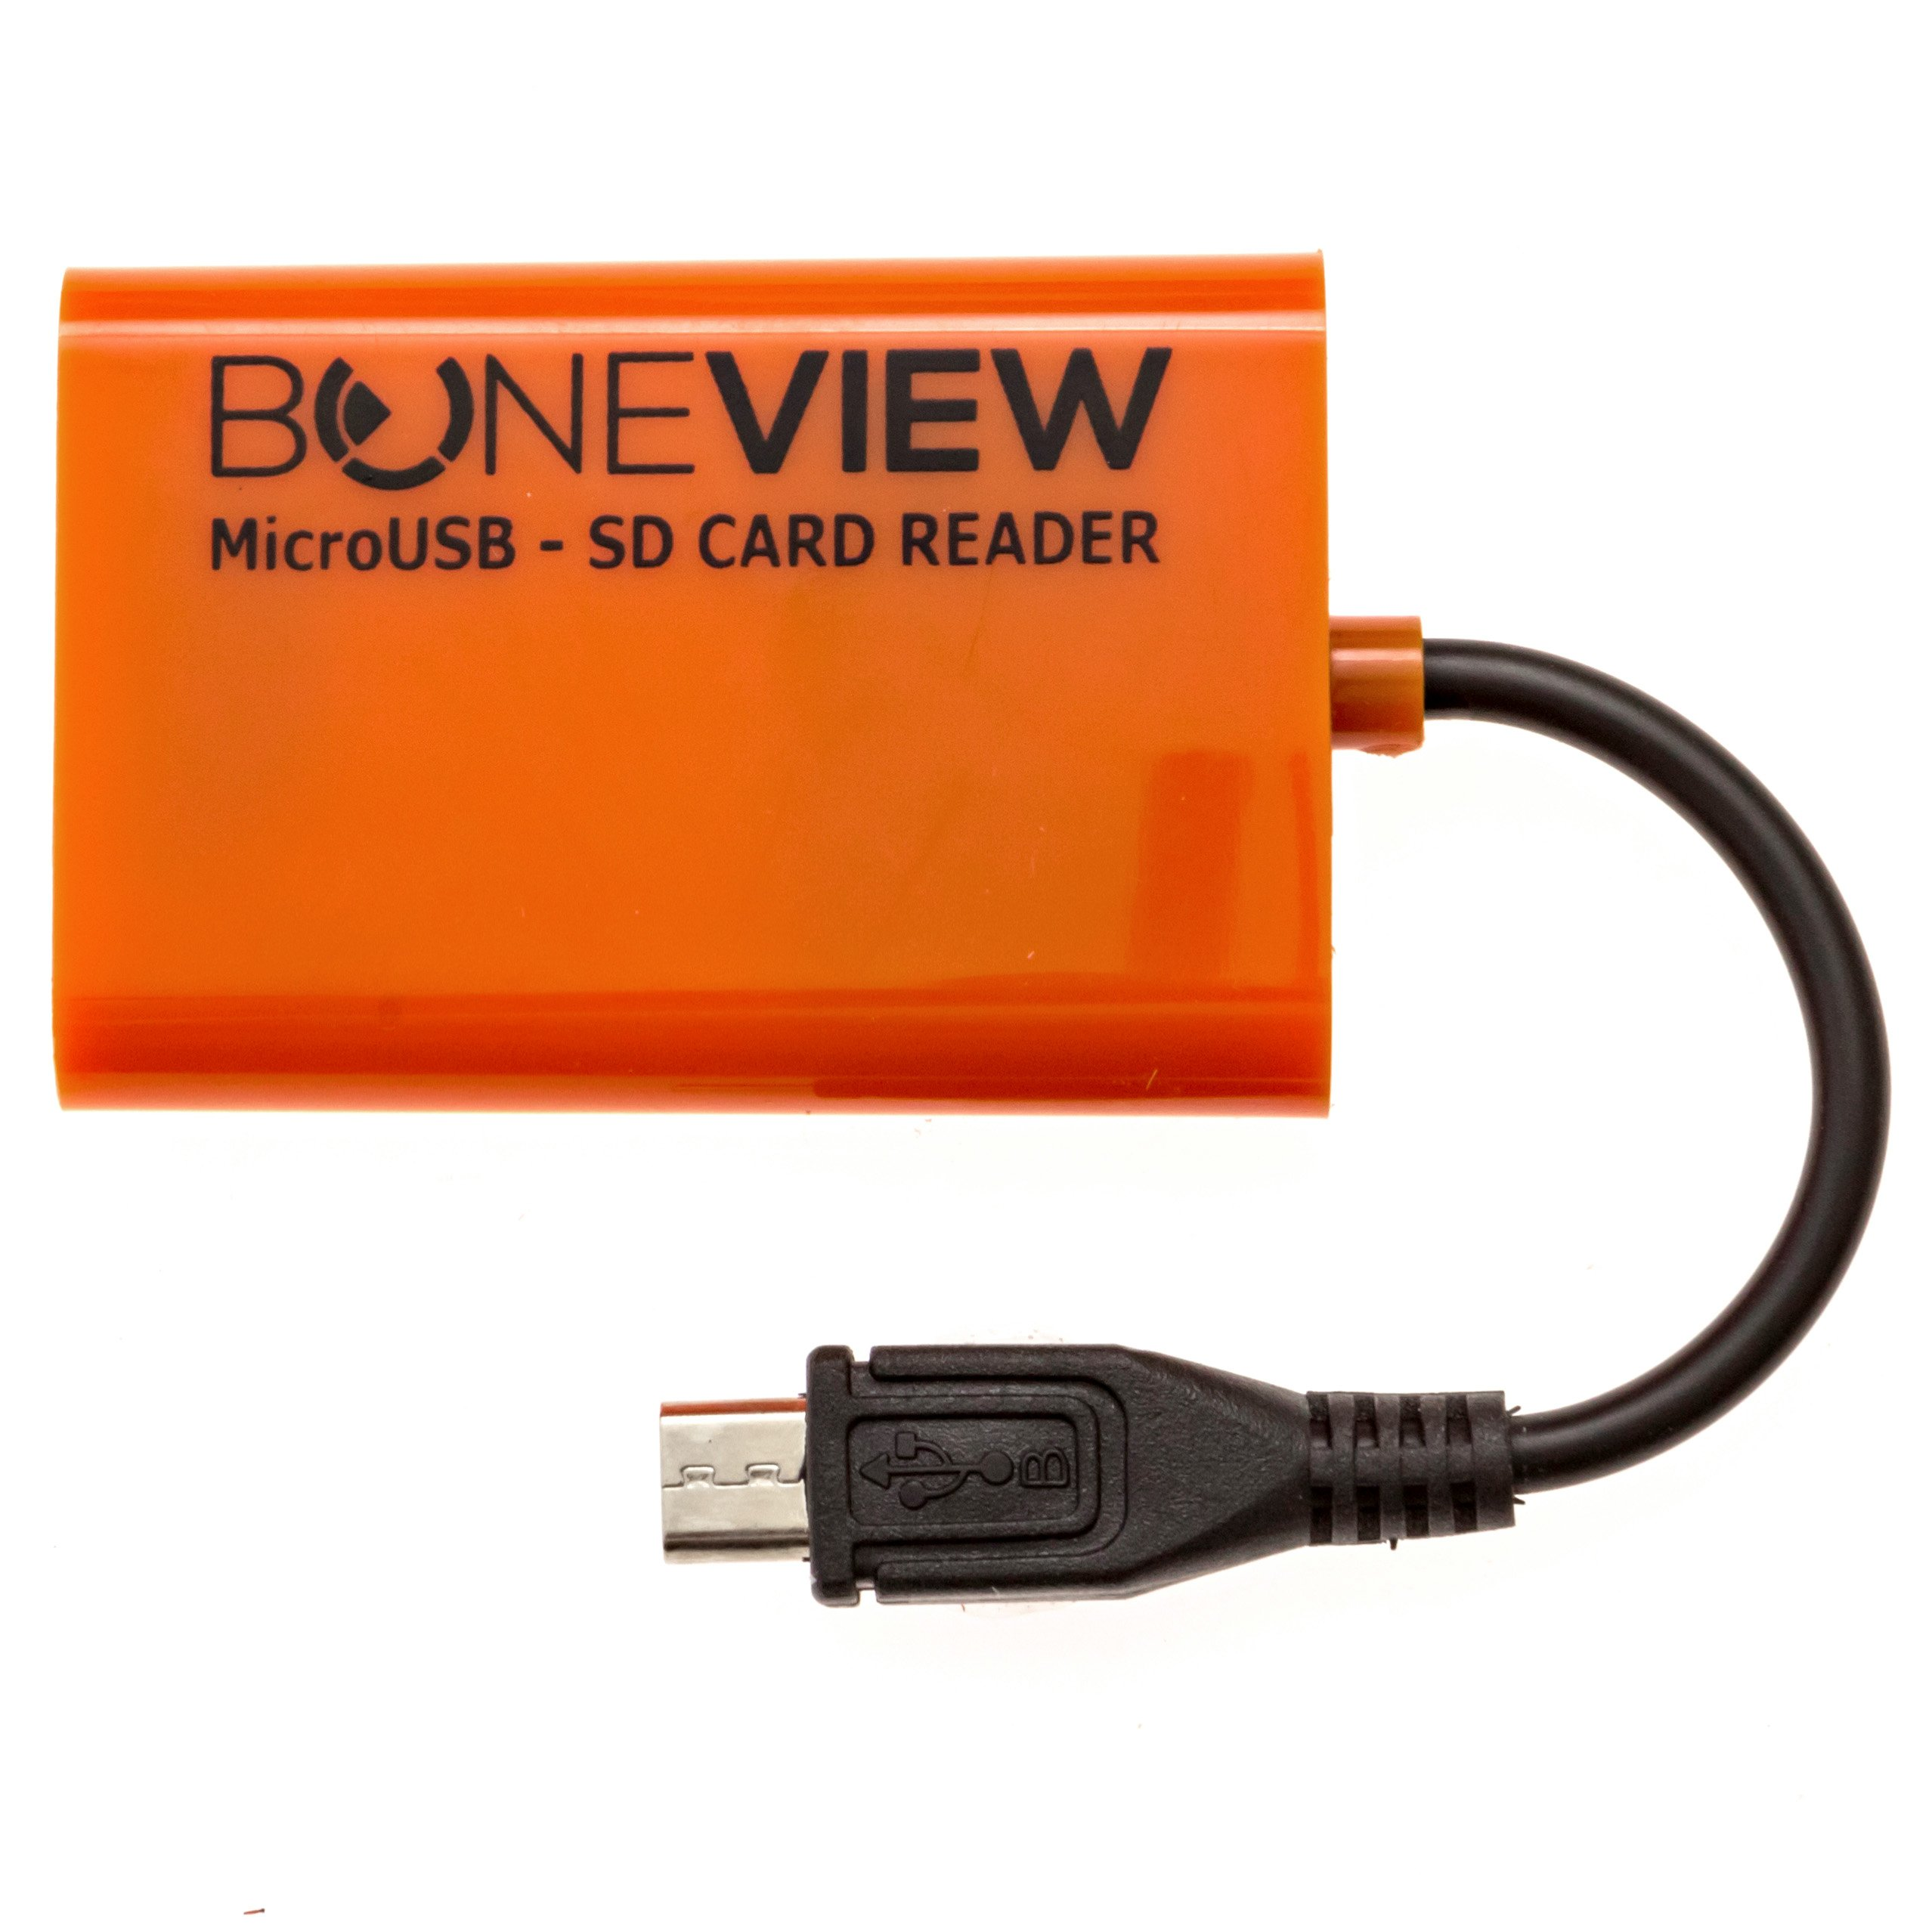 BoneView SD Micro SD Memory Card Reader Trail Camera Viewer for Android Micro-USB & Type-C OTG Smart Phone to View Deer Hunting Game Cam Photo & Video, Free USB-C Adapter included by BoneView (Image #6)